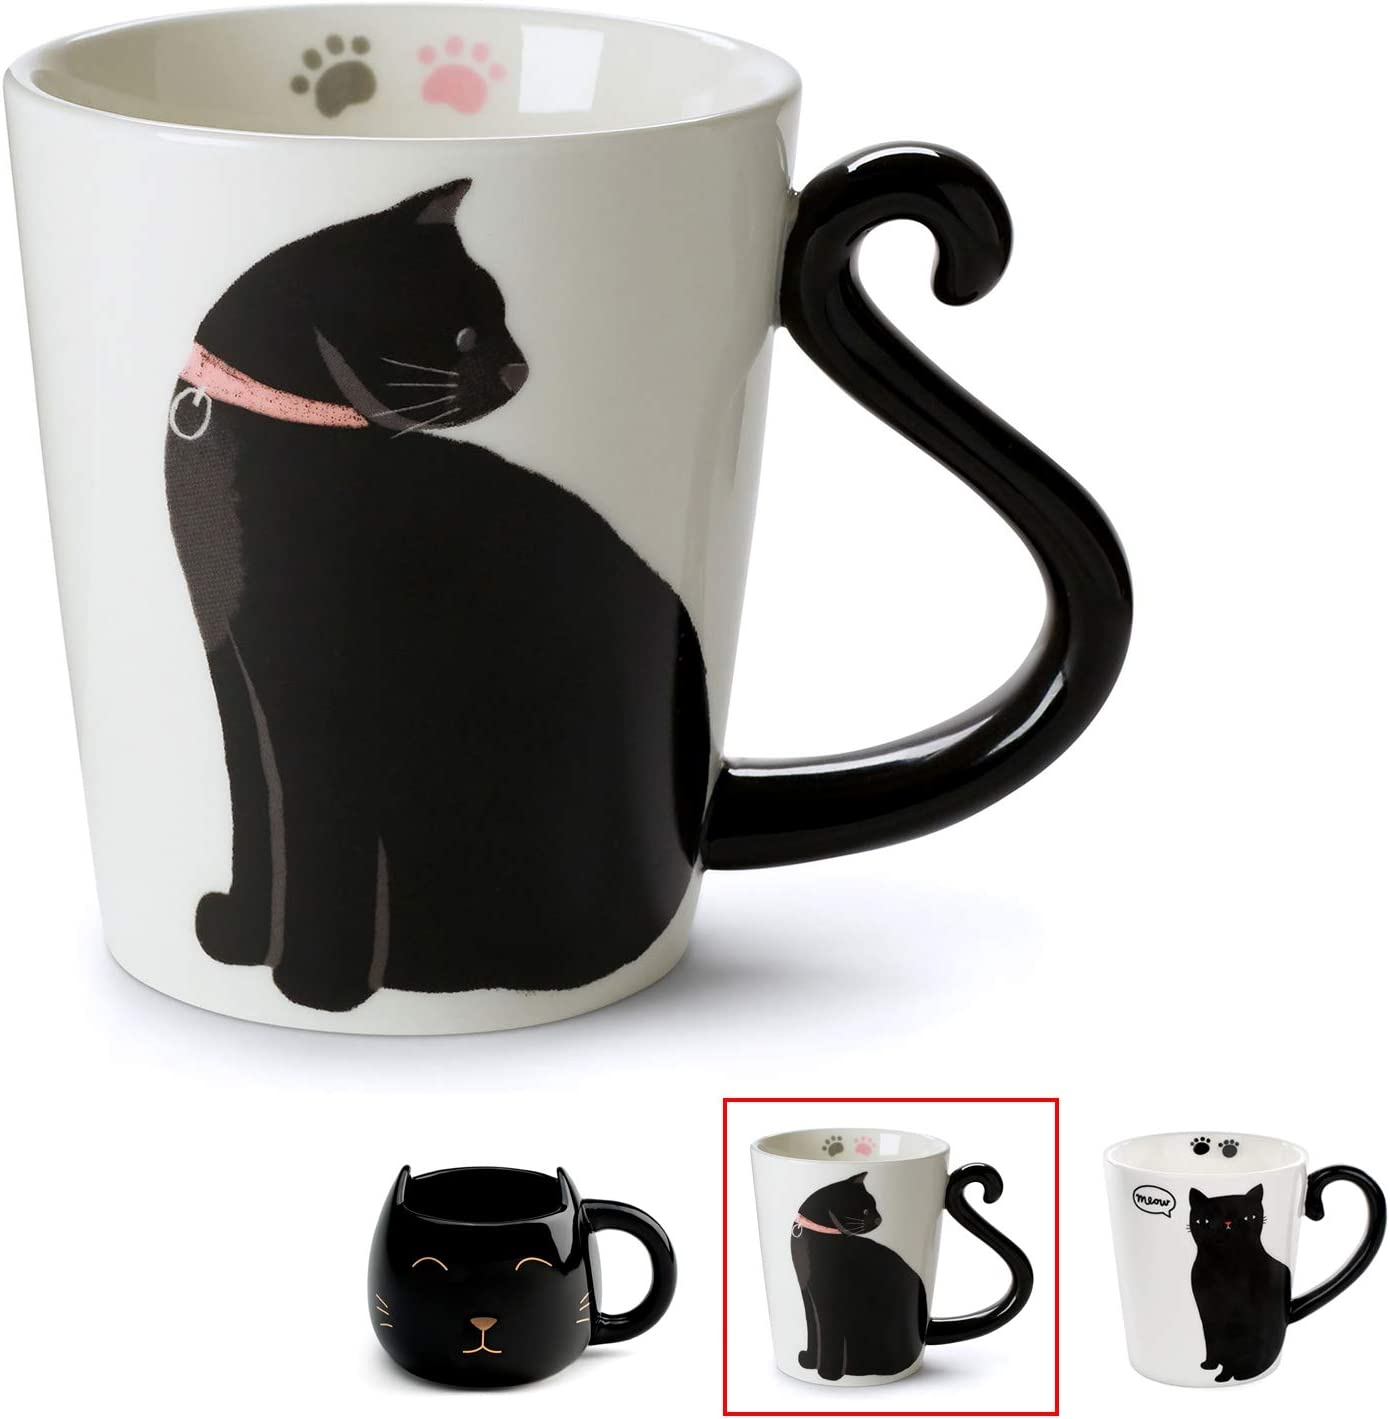 Amazon Com Cute Cat Mug For Coffee Or Tea Ceramic Cup For Cat Lovers With Black And White Kitty And Tail Shaped Handle Unique 11 Oz Accessories Mugs Make Best Presents For